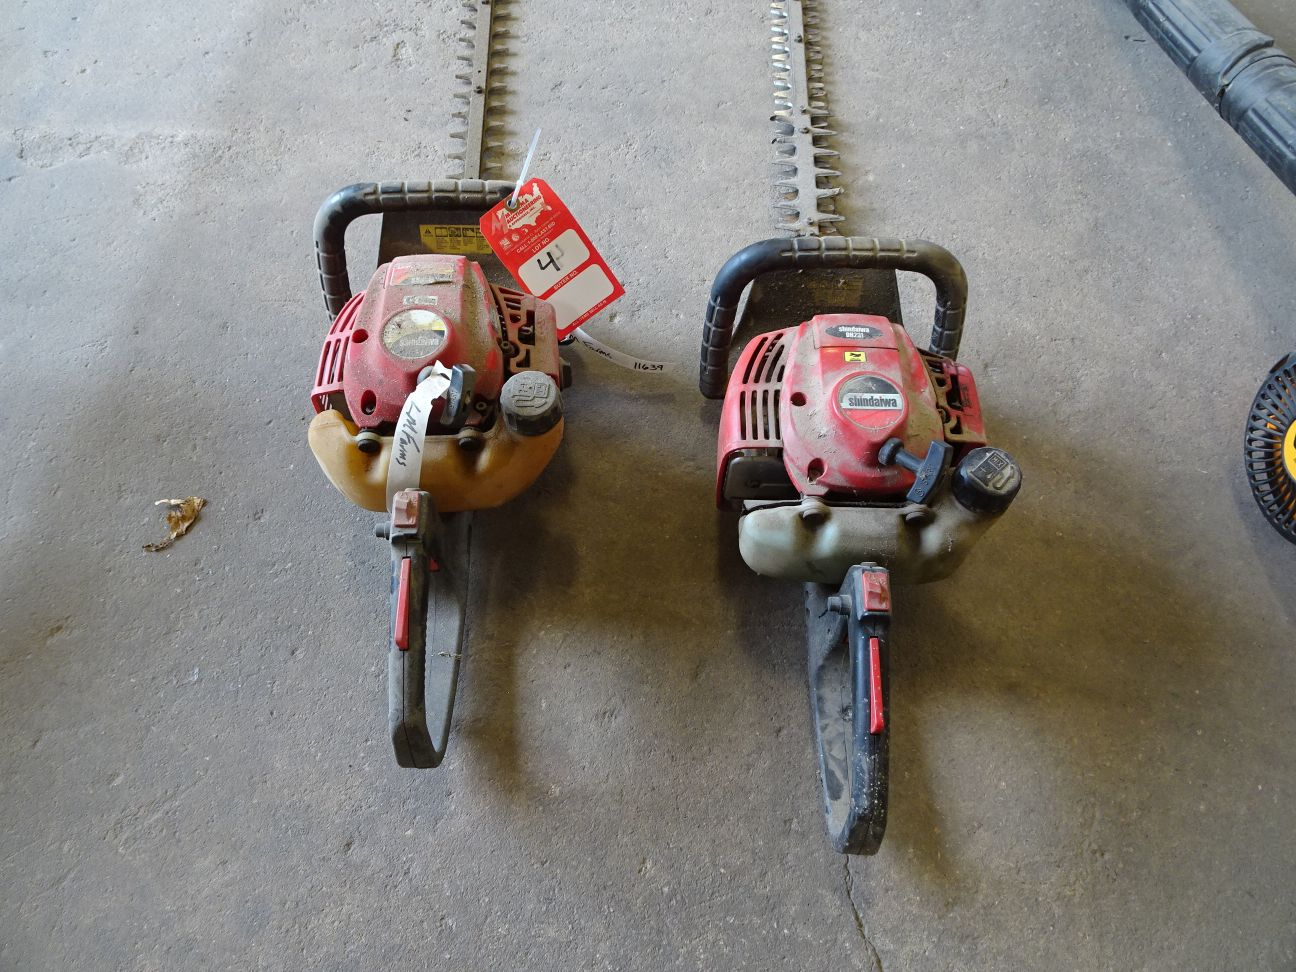 Lot 4 - (2) SHINDAIWA HEDGE TRIMMERS, DH231 AND DH230 MODELS (LOCATION: SHOP)